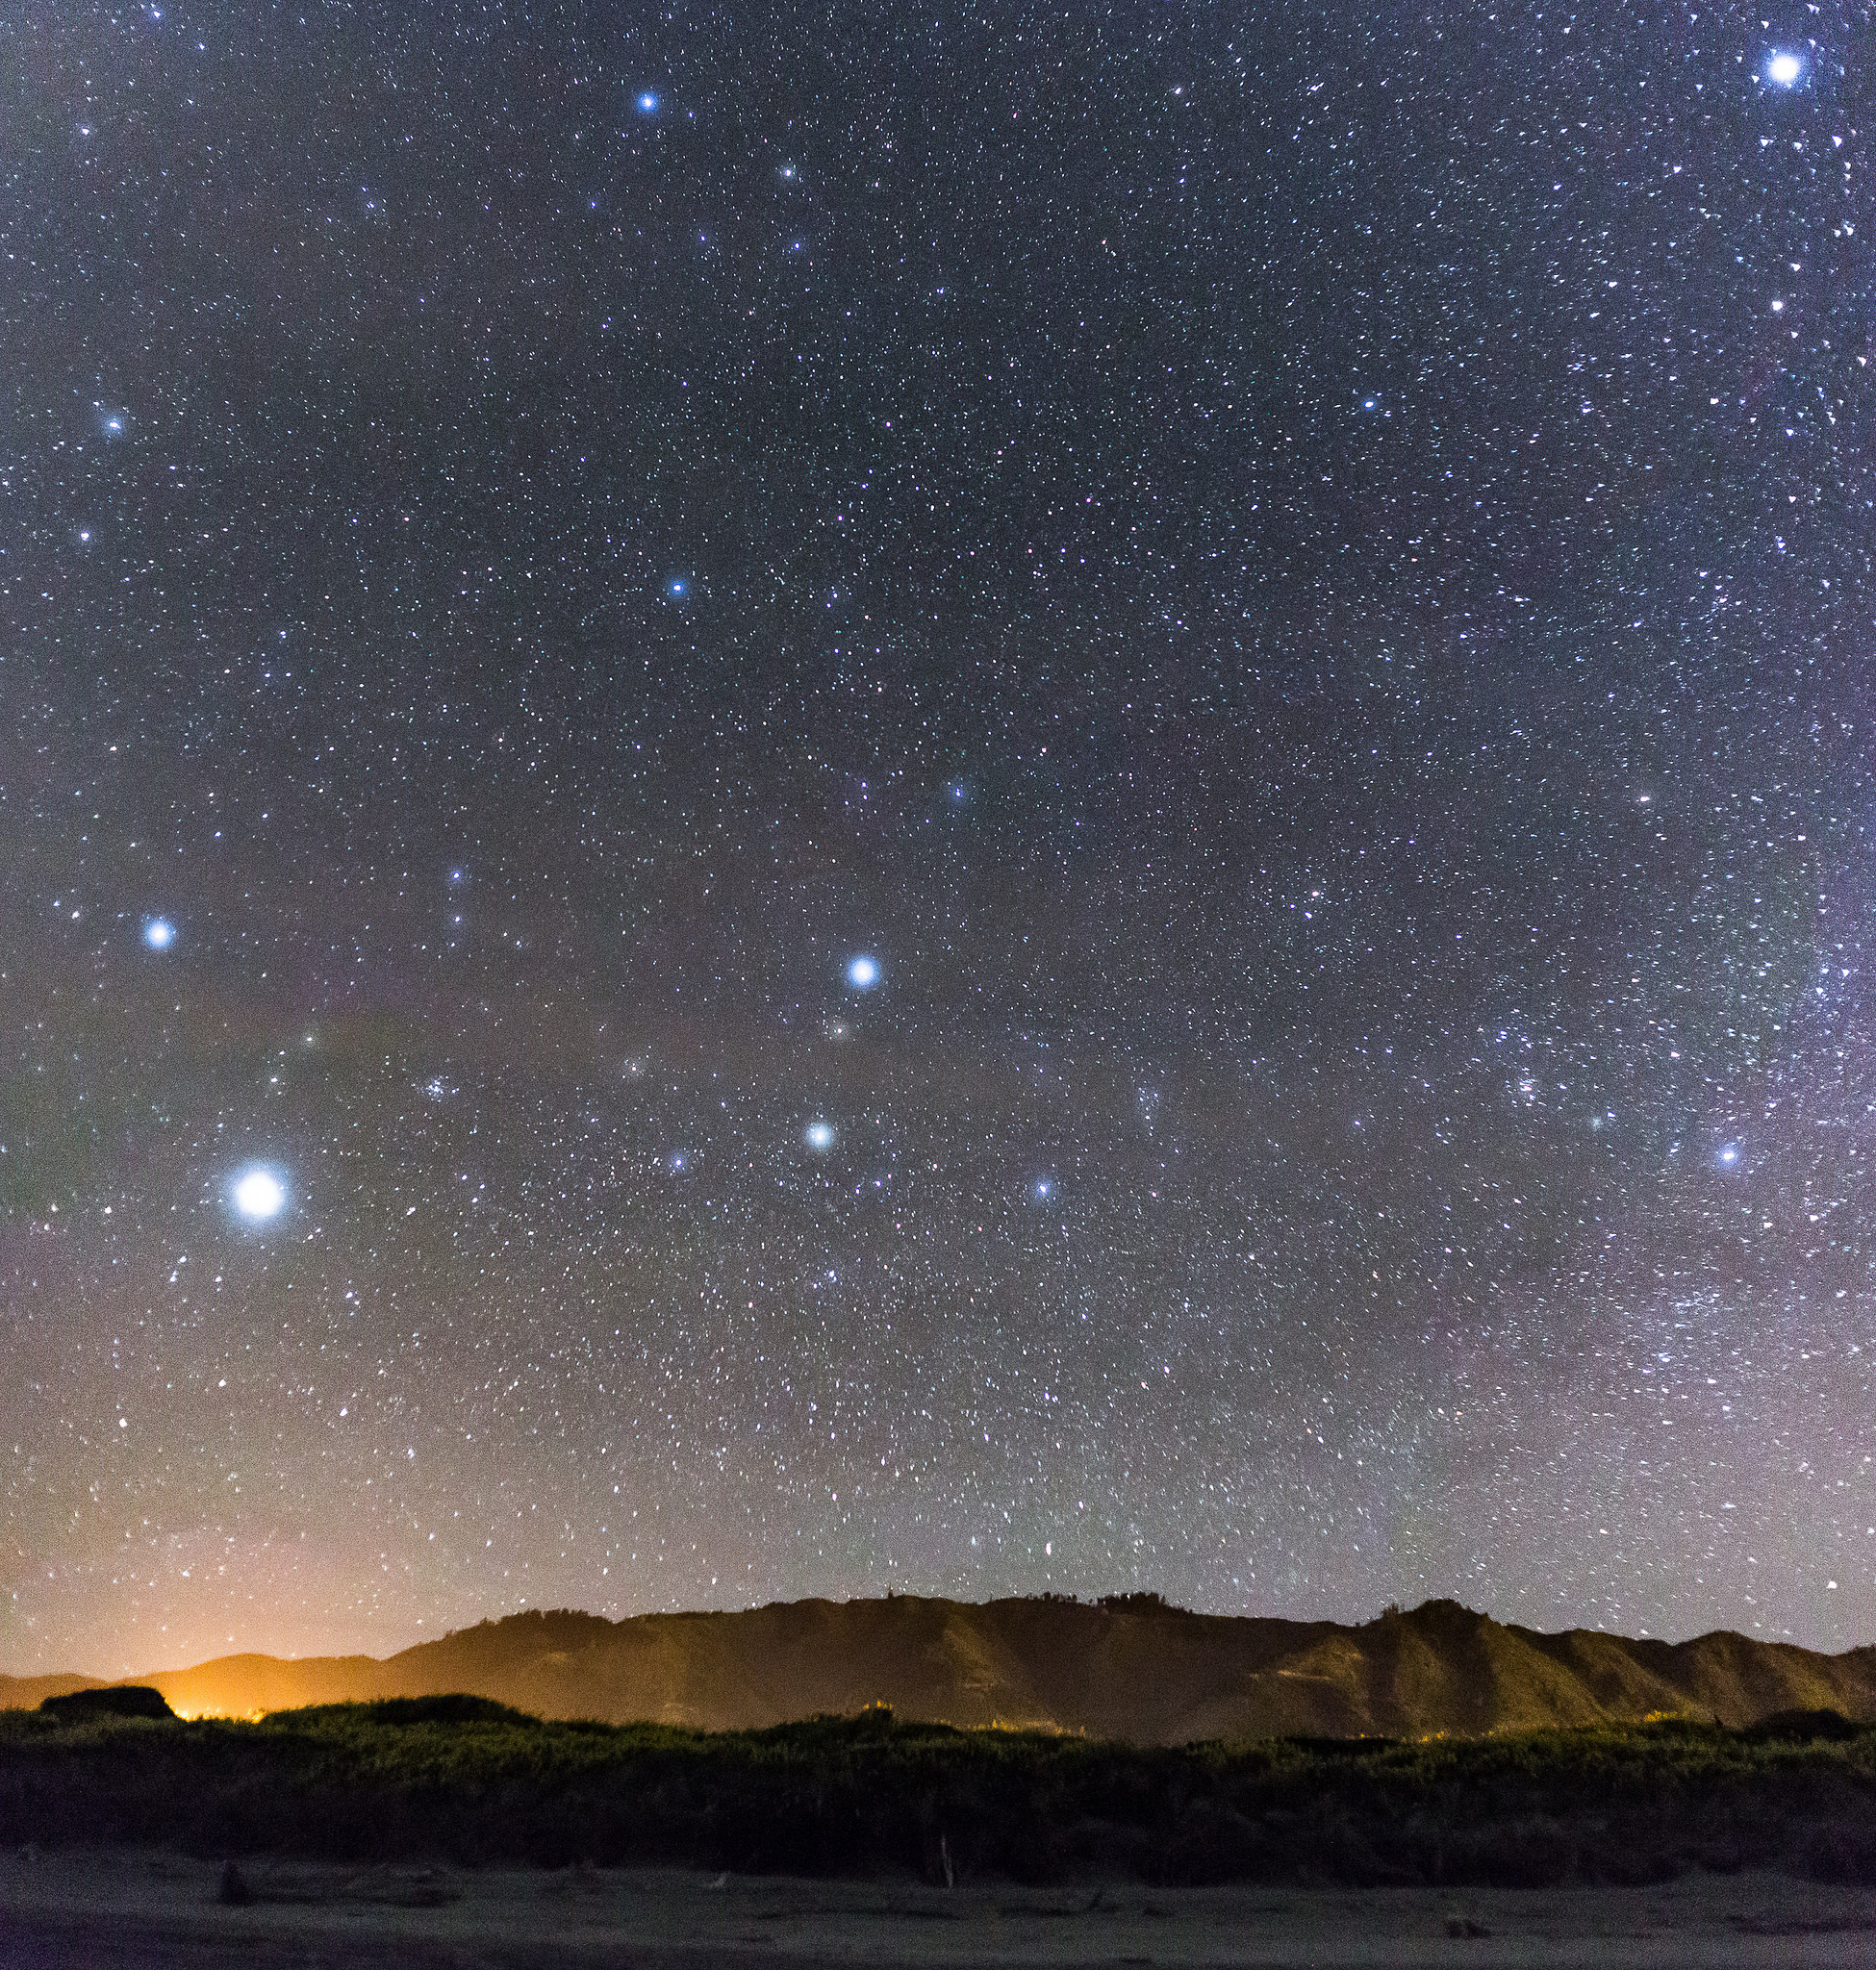 Stars over the Tararua's from Peka Peka beach